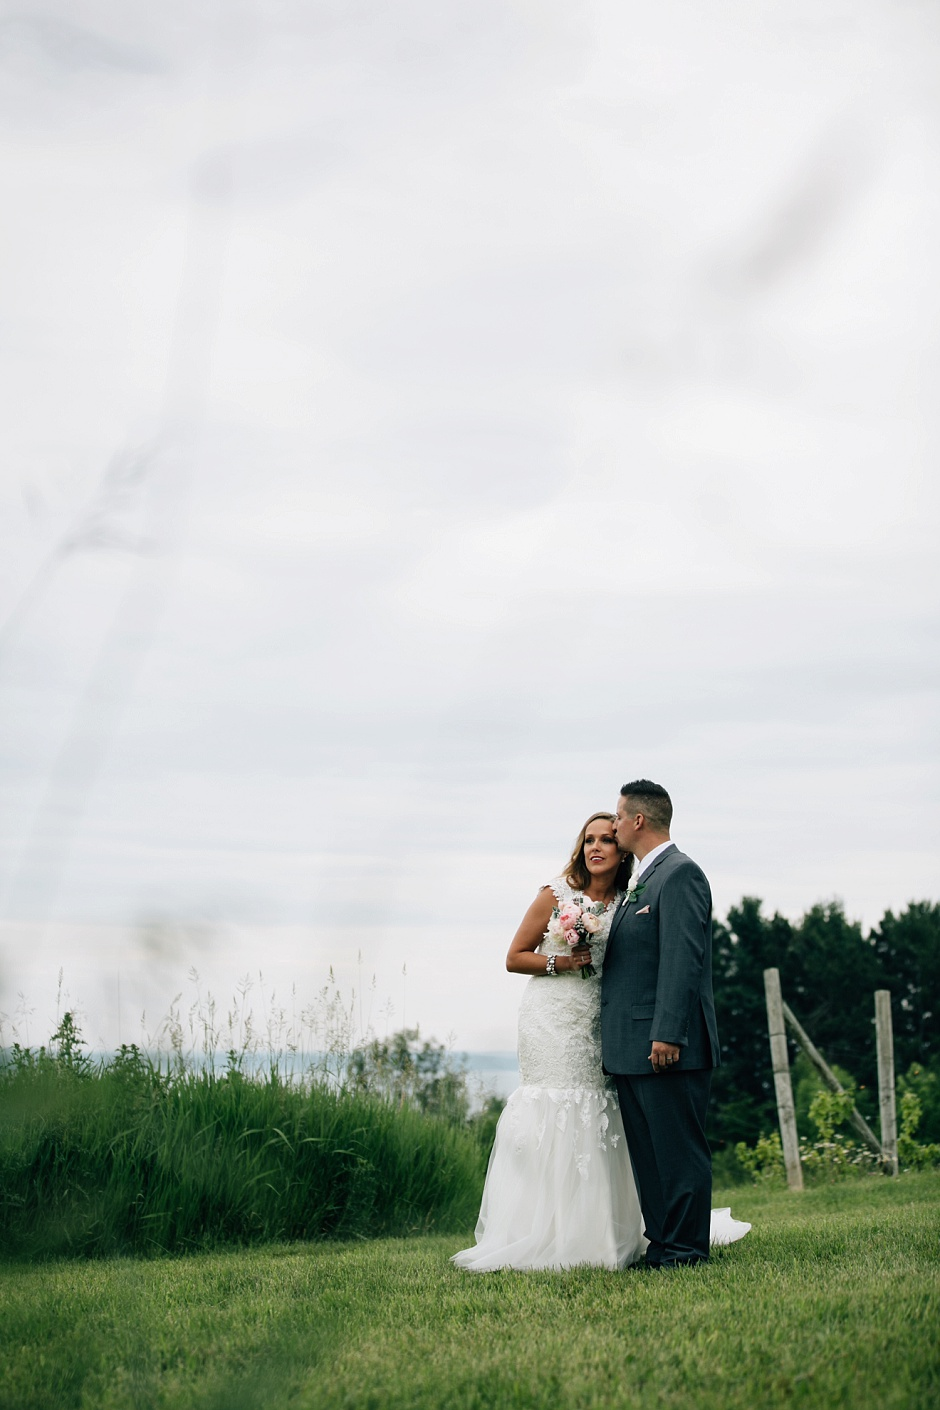 traverse_city_michigan_wedding_photographer055